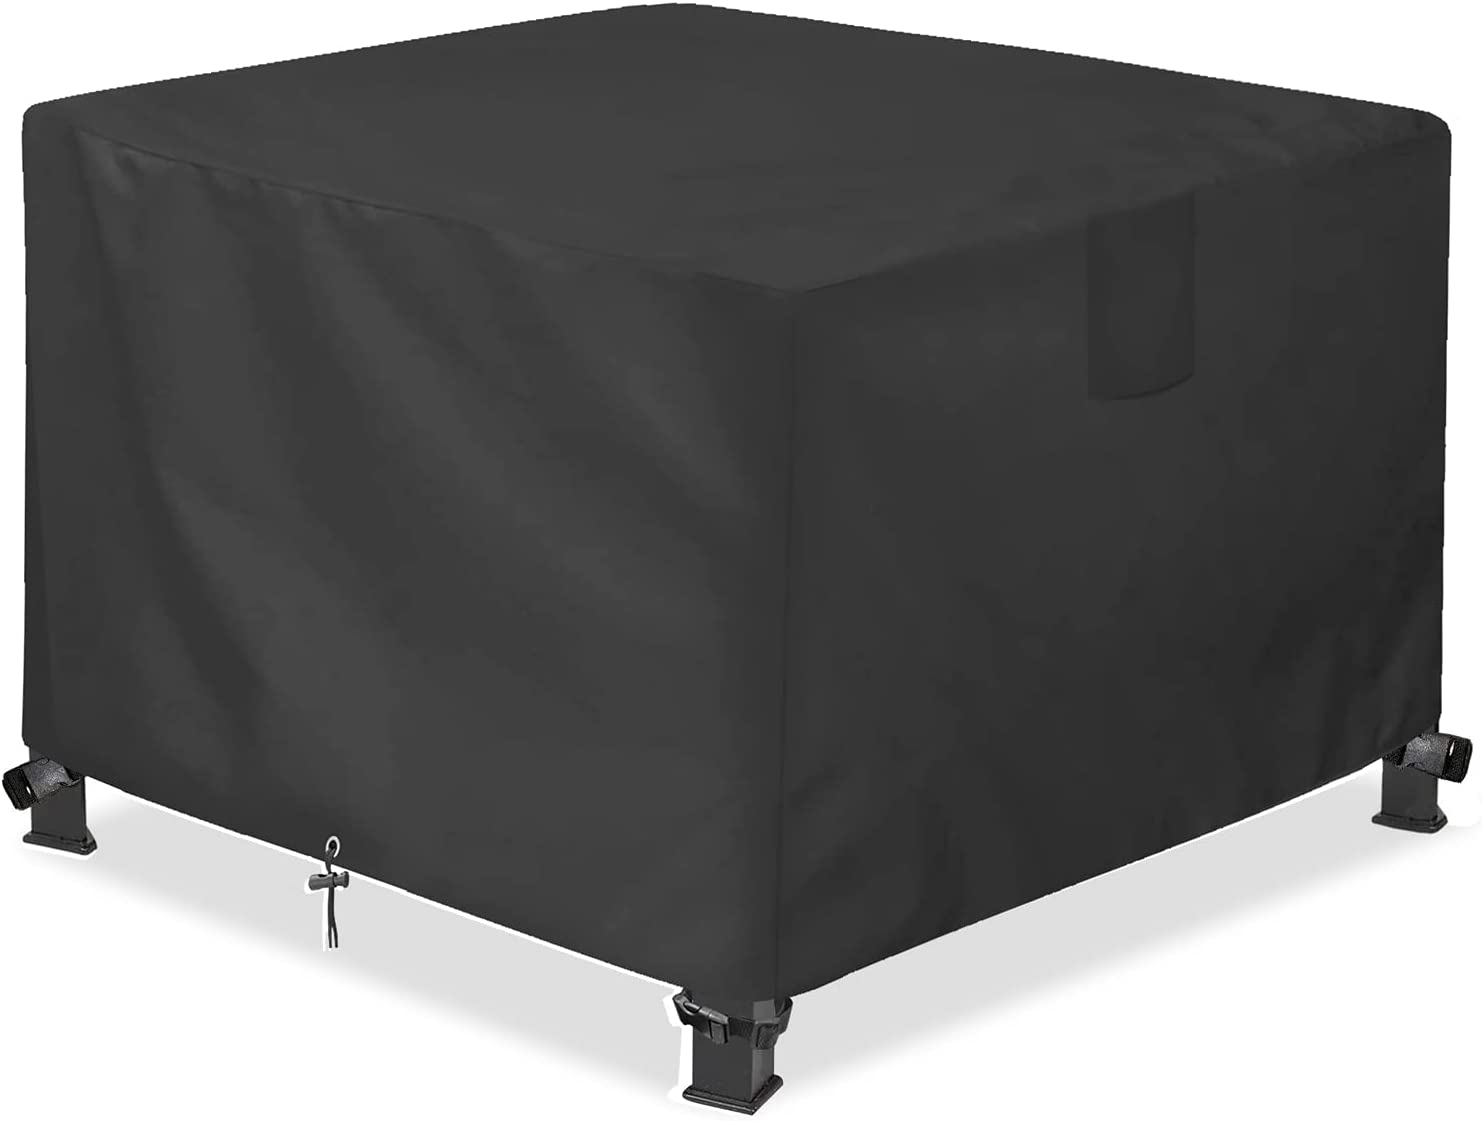 GARDRIT Patio Outlet sale feature Fire Pit Cover sold out - 100% Square Gas Firepi Waterproof